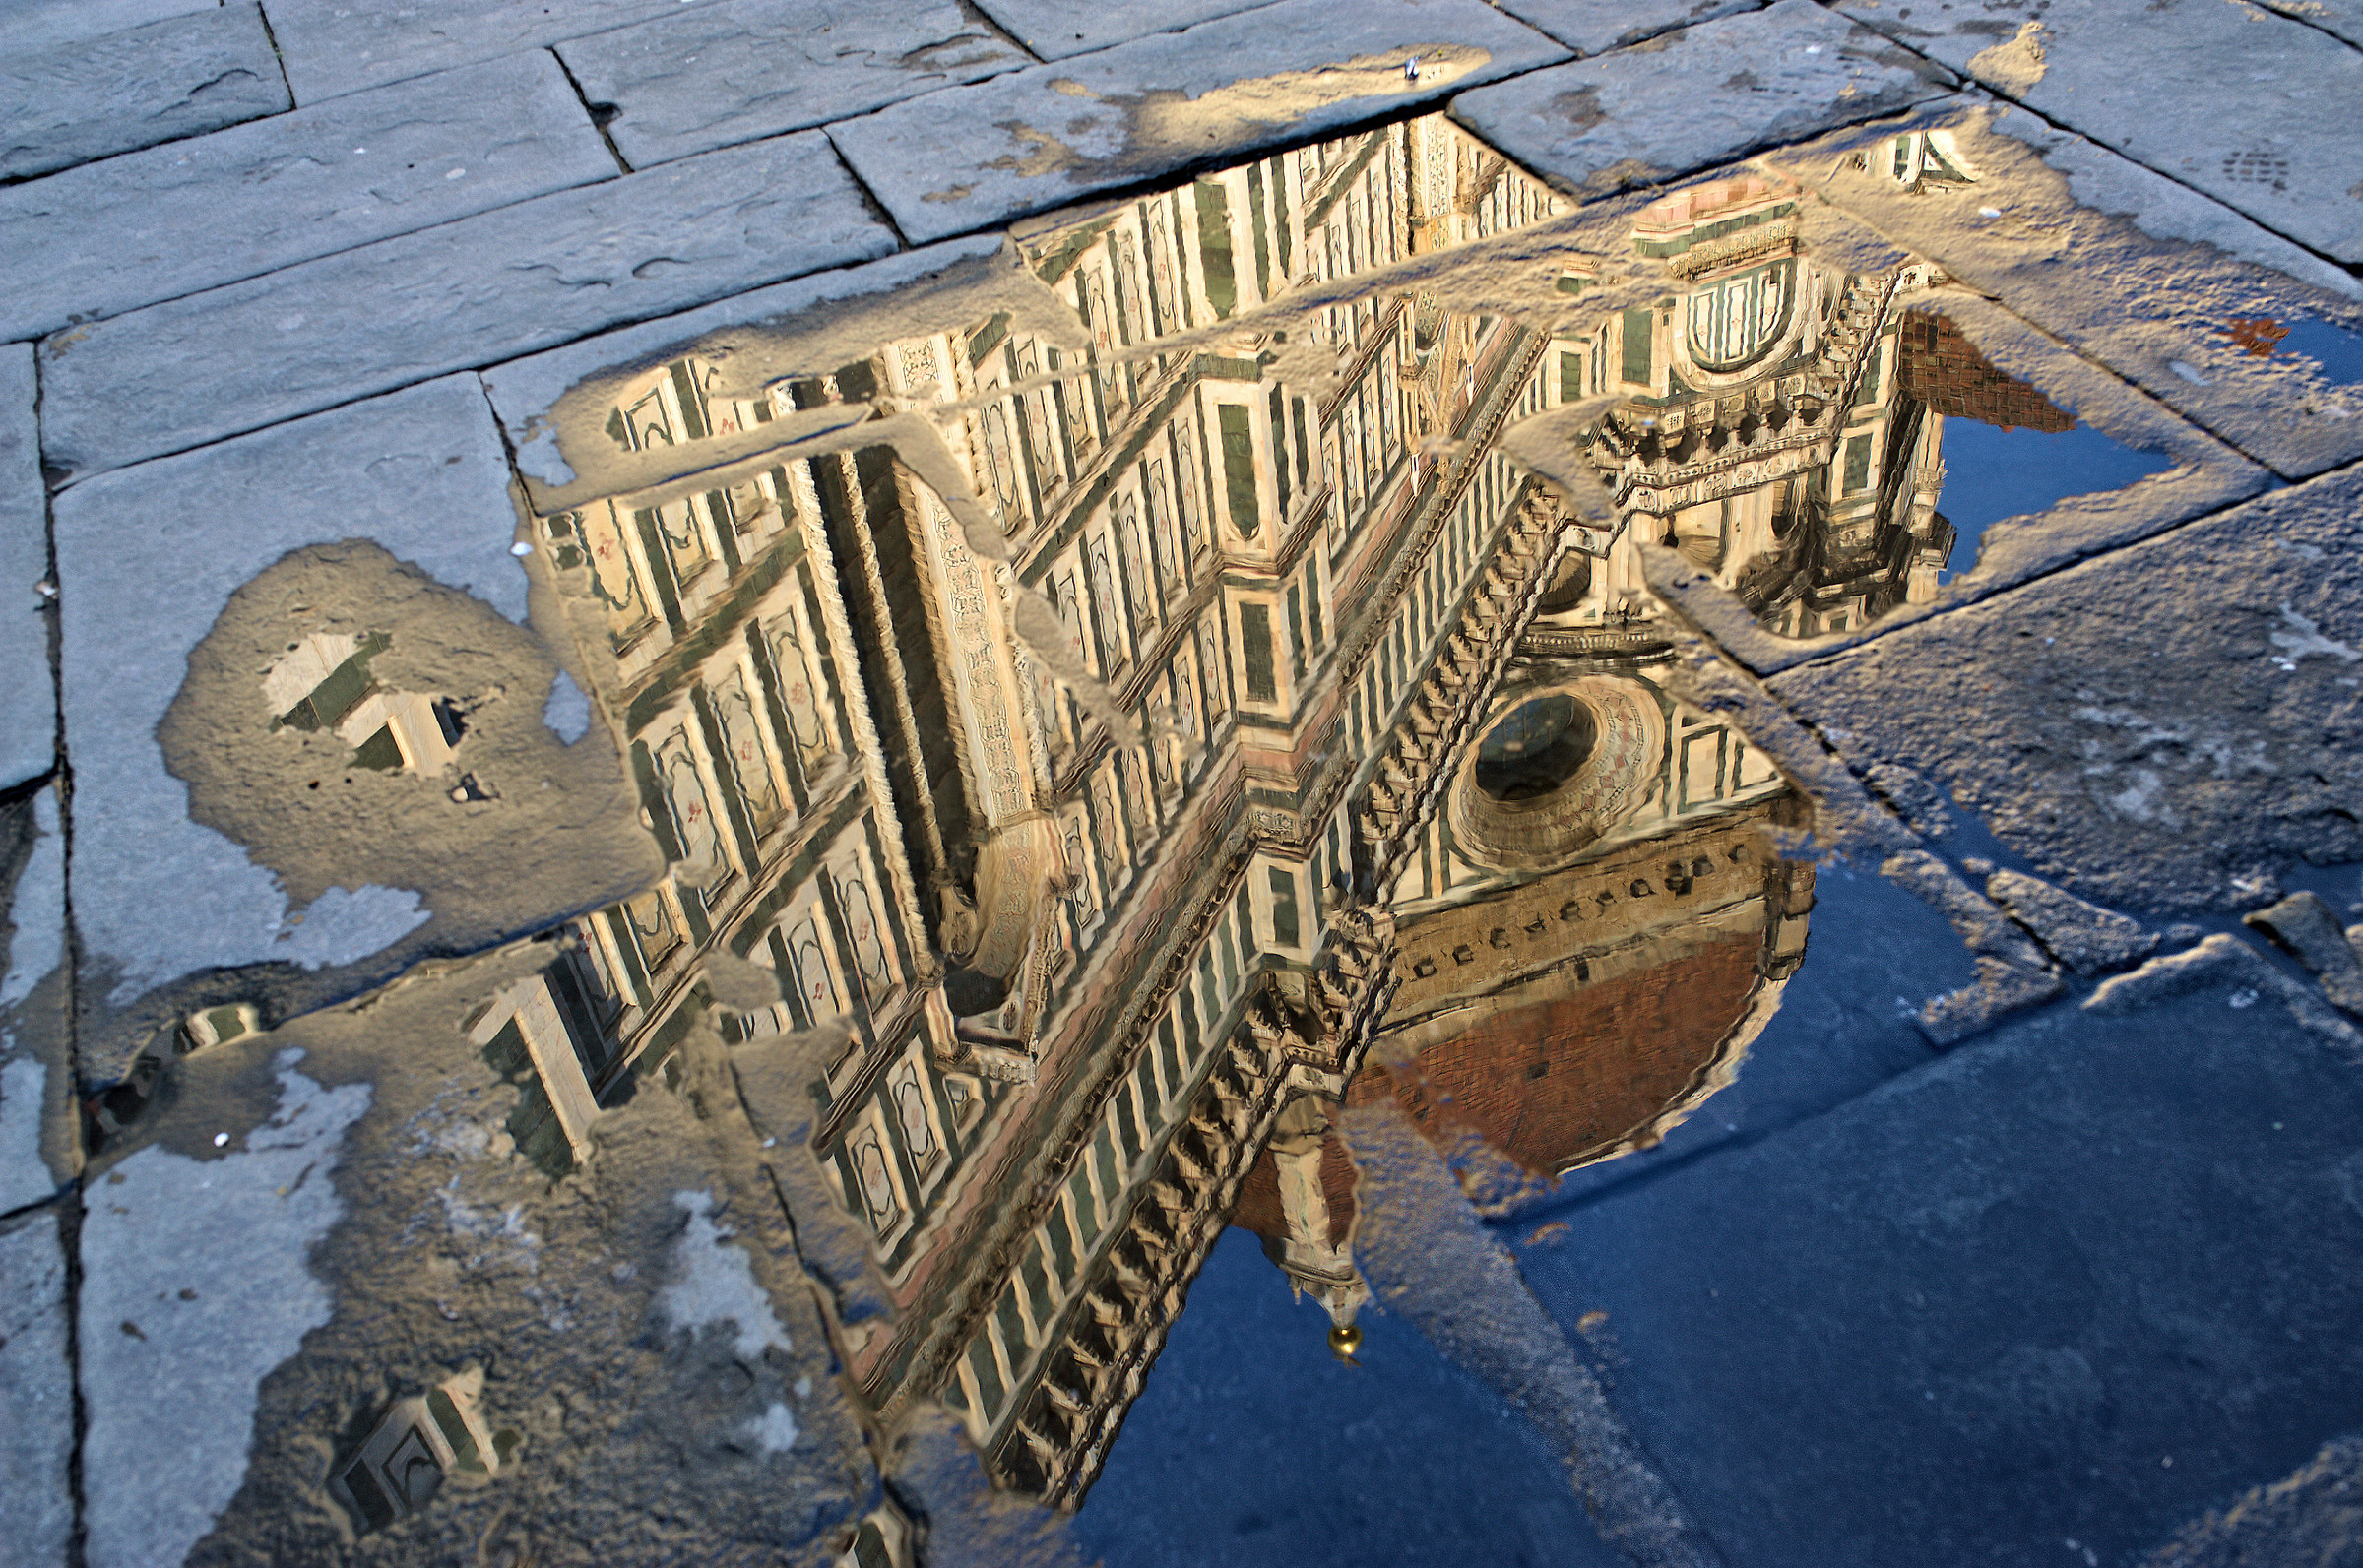 observing through the puddles...